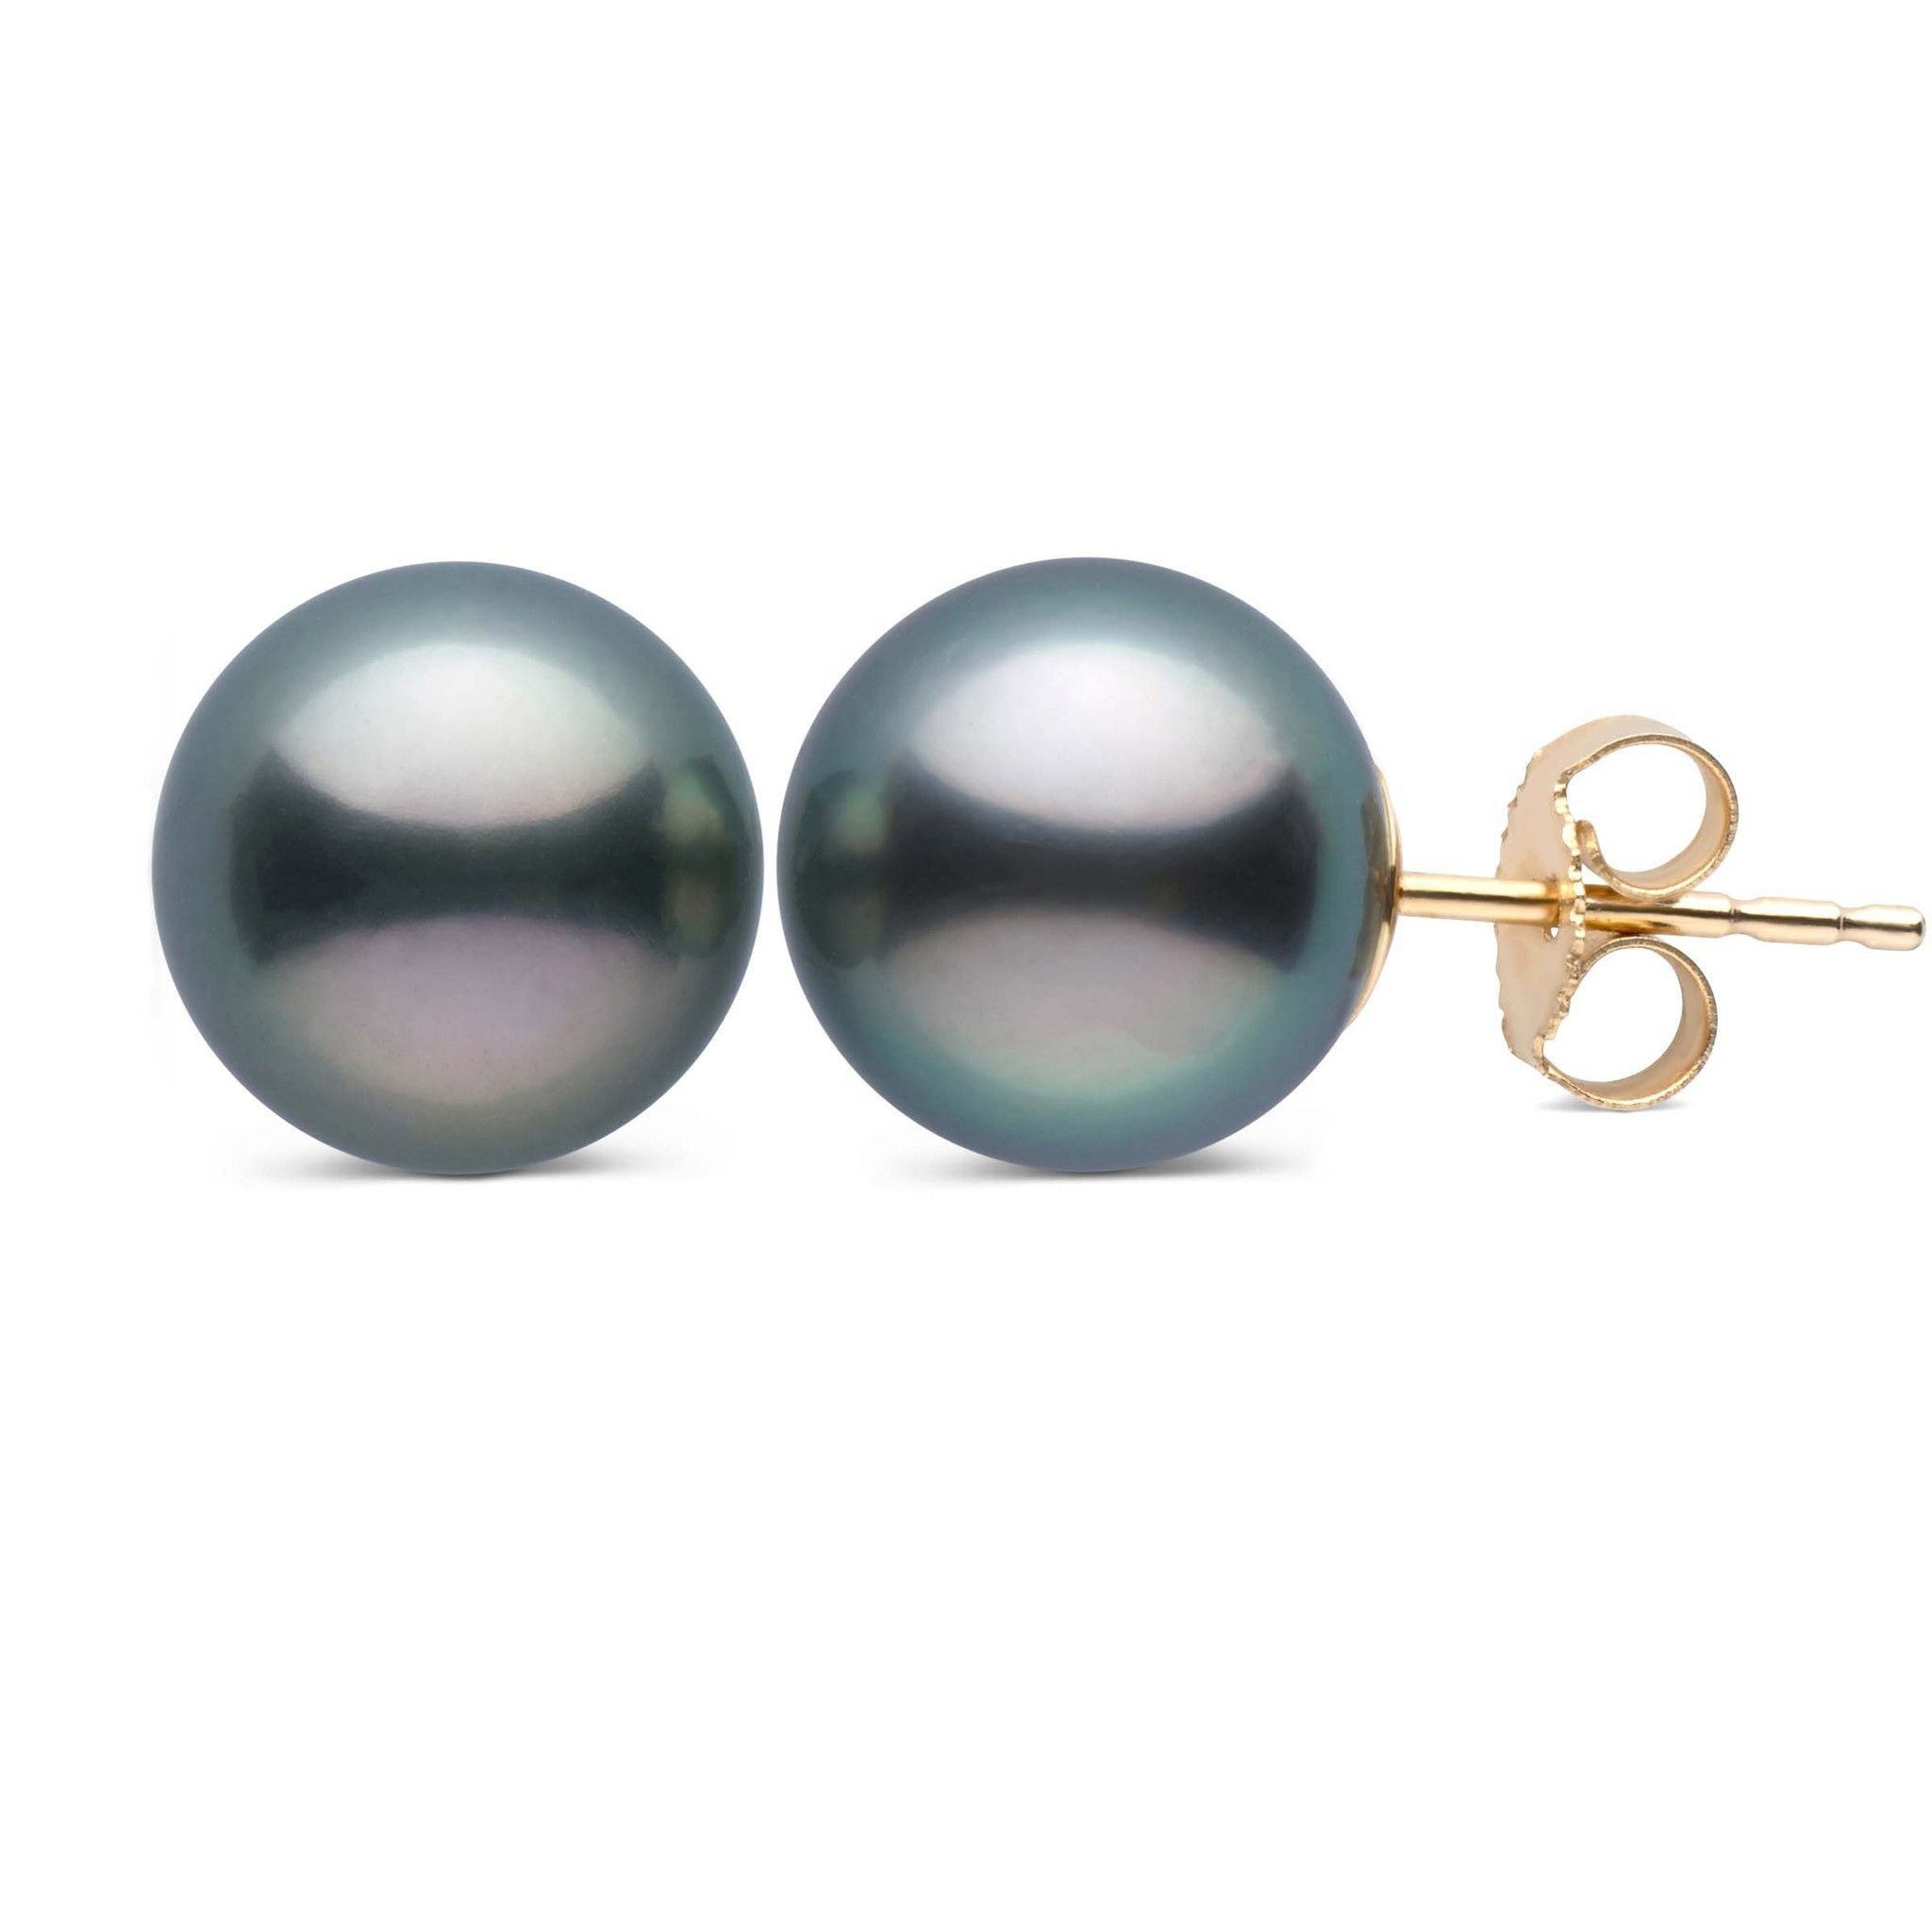 8.0-9.0 mm AAA Tahitian Pearl Stud Earrings